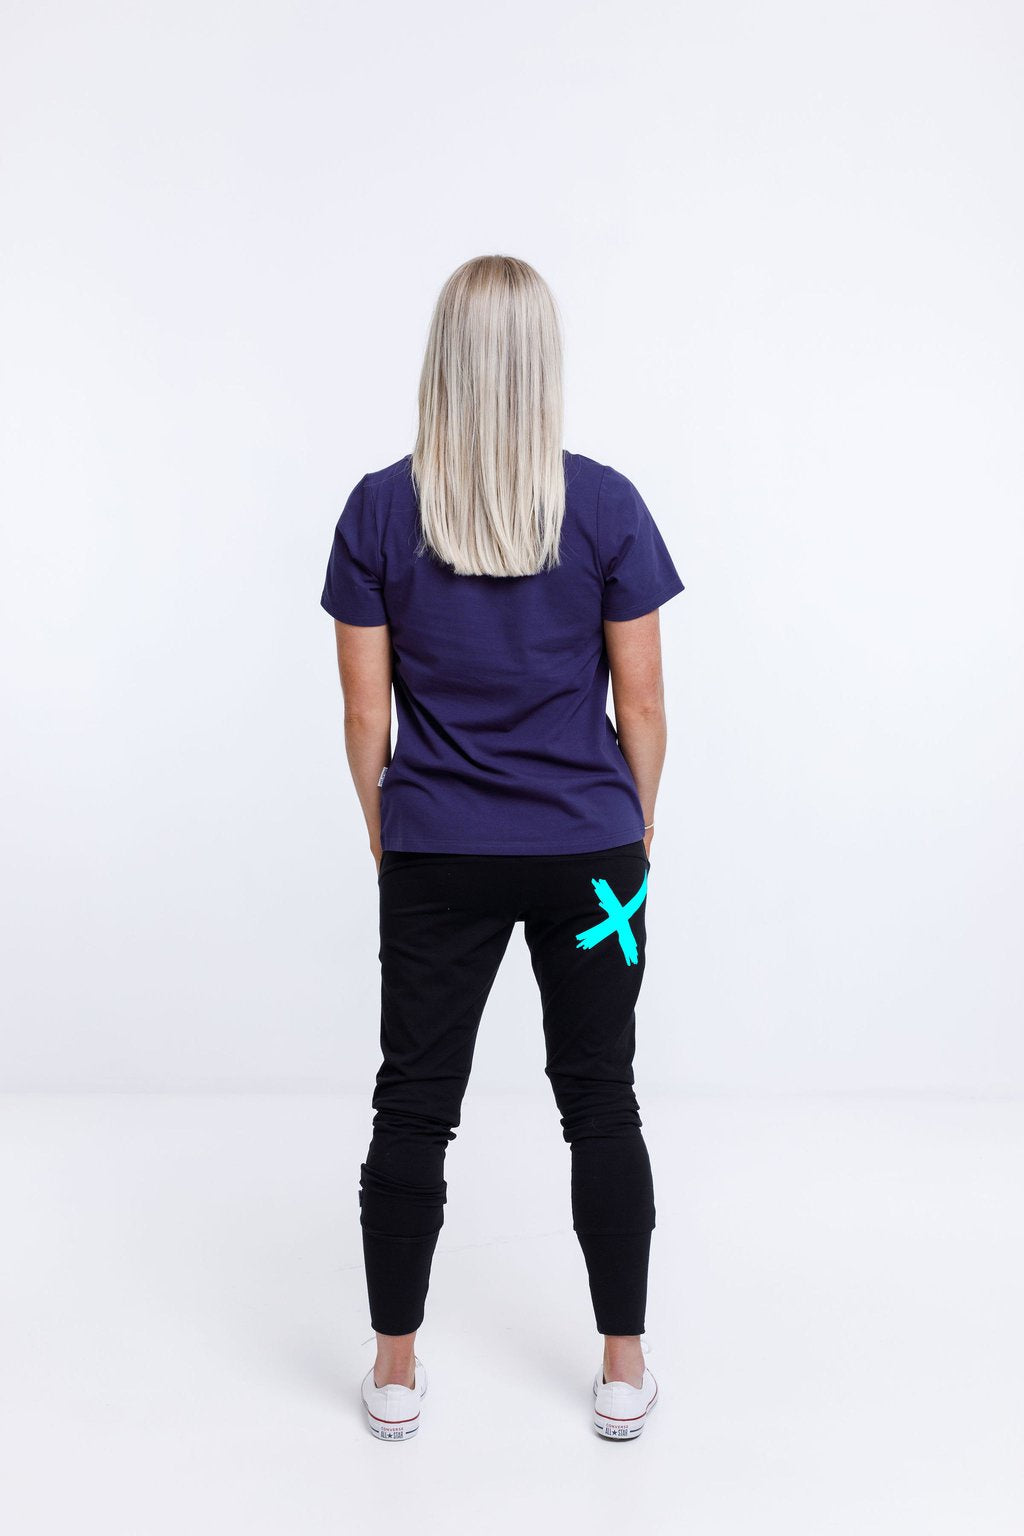 APARTMENT PANTS - BLACK w BRIGHT BLUE X